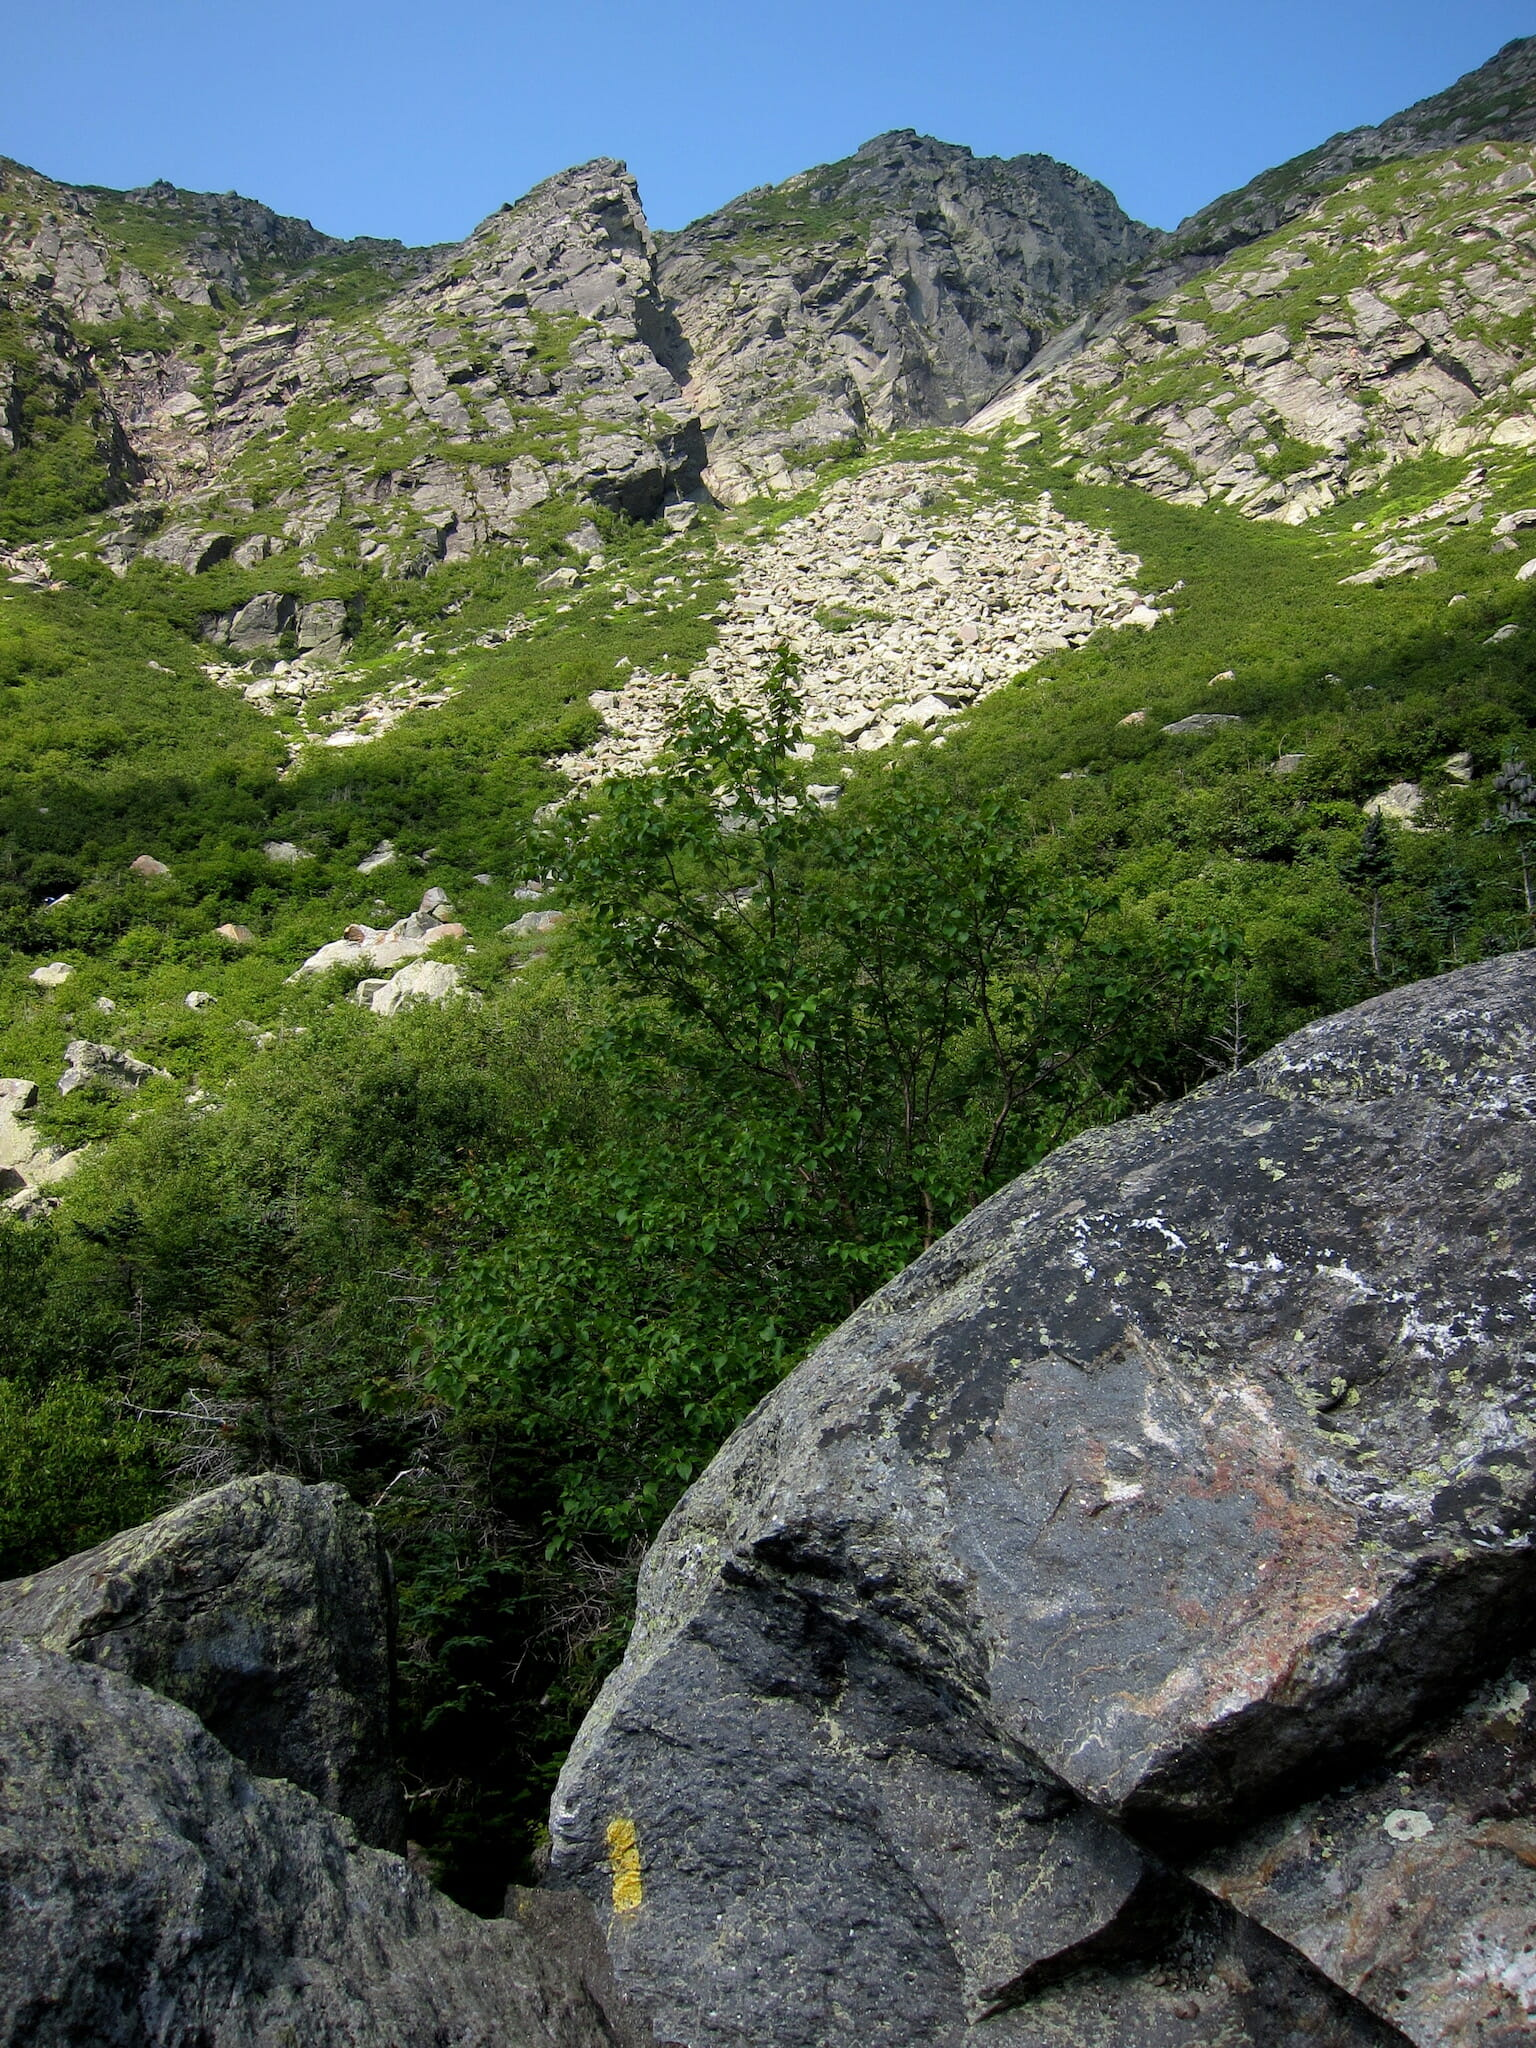 Looking up at Huntington Ravine among boulders and a trail blaze